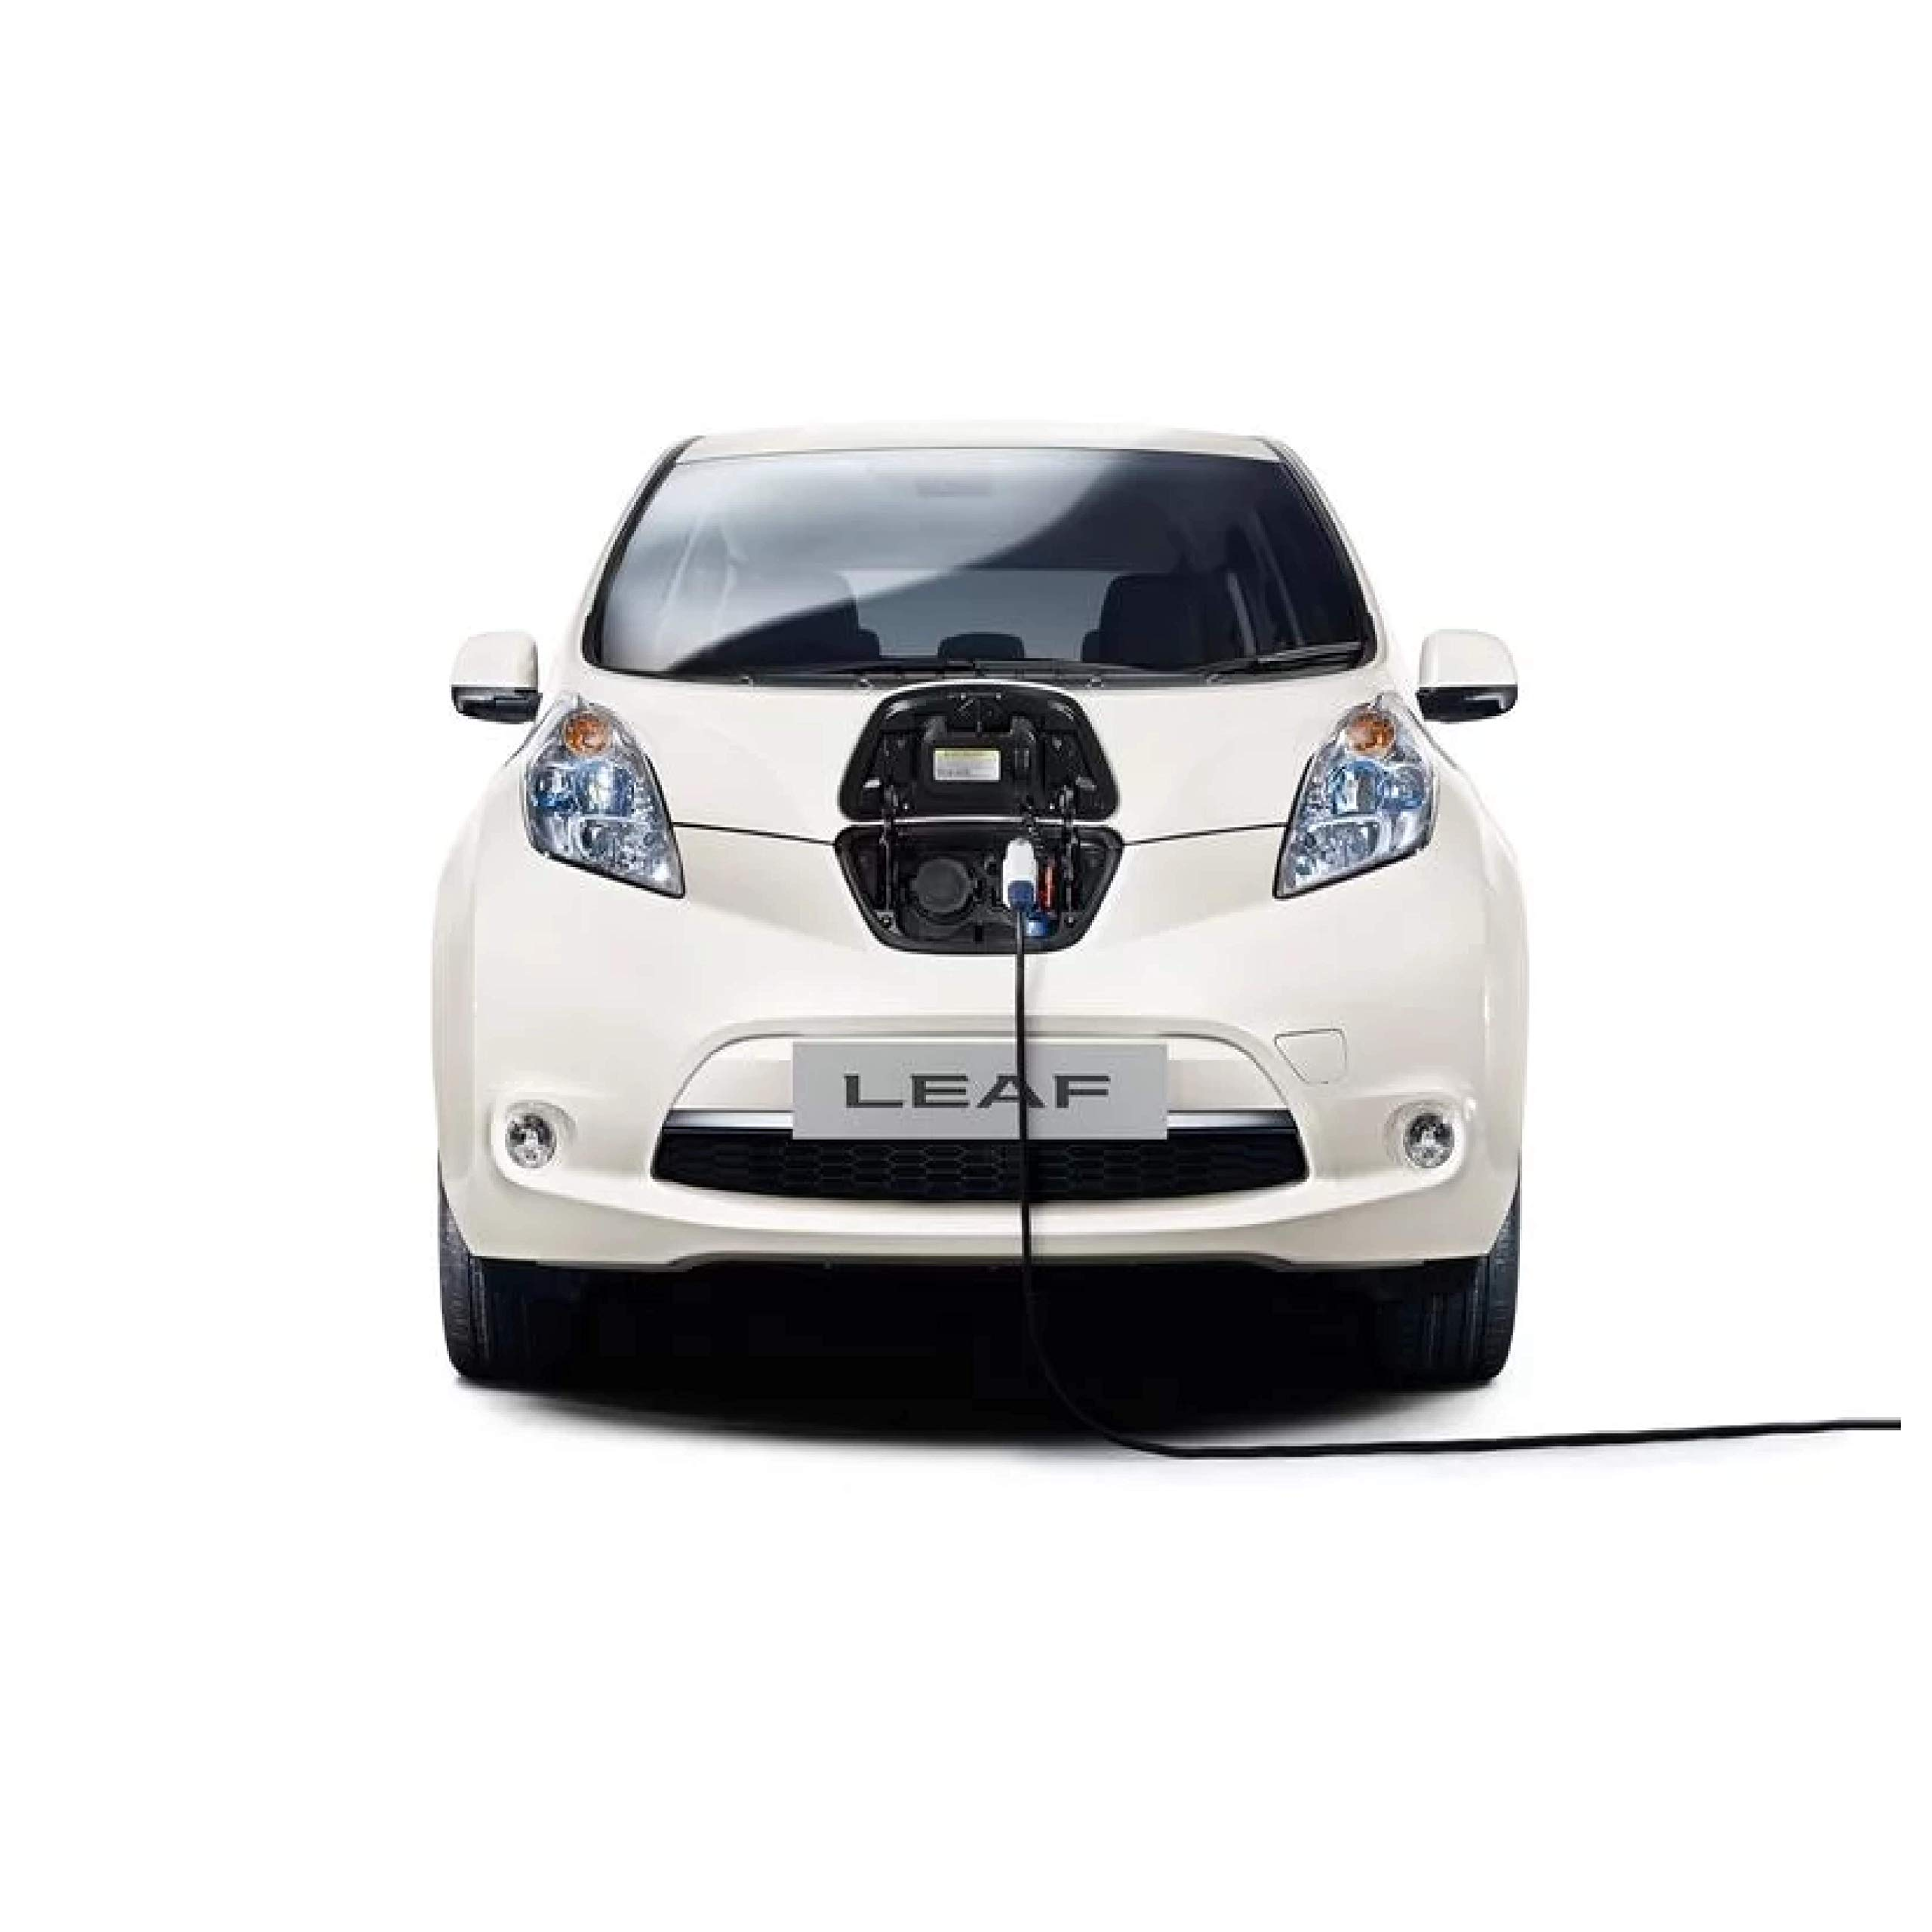 PRIMECOM Level-2 Electric Vehicle Charger 220 Volt 30', 35', 40', and 50' Feet Lengths (6-20P, 50 Feet) by PRIMECOM (Image #10)